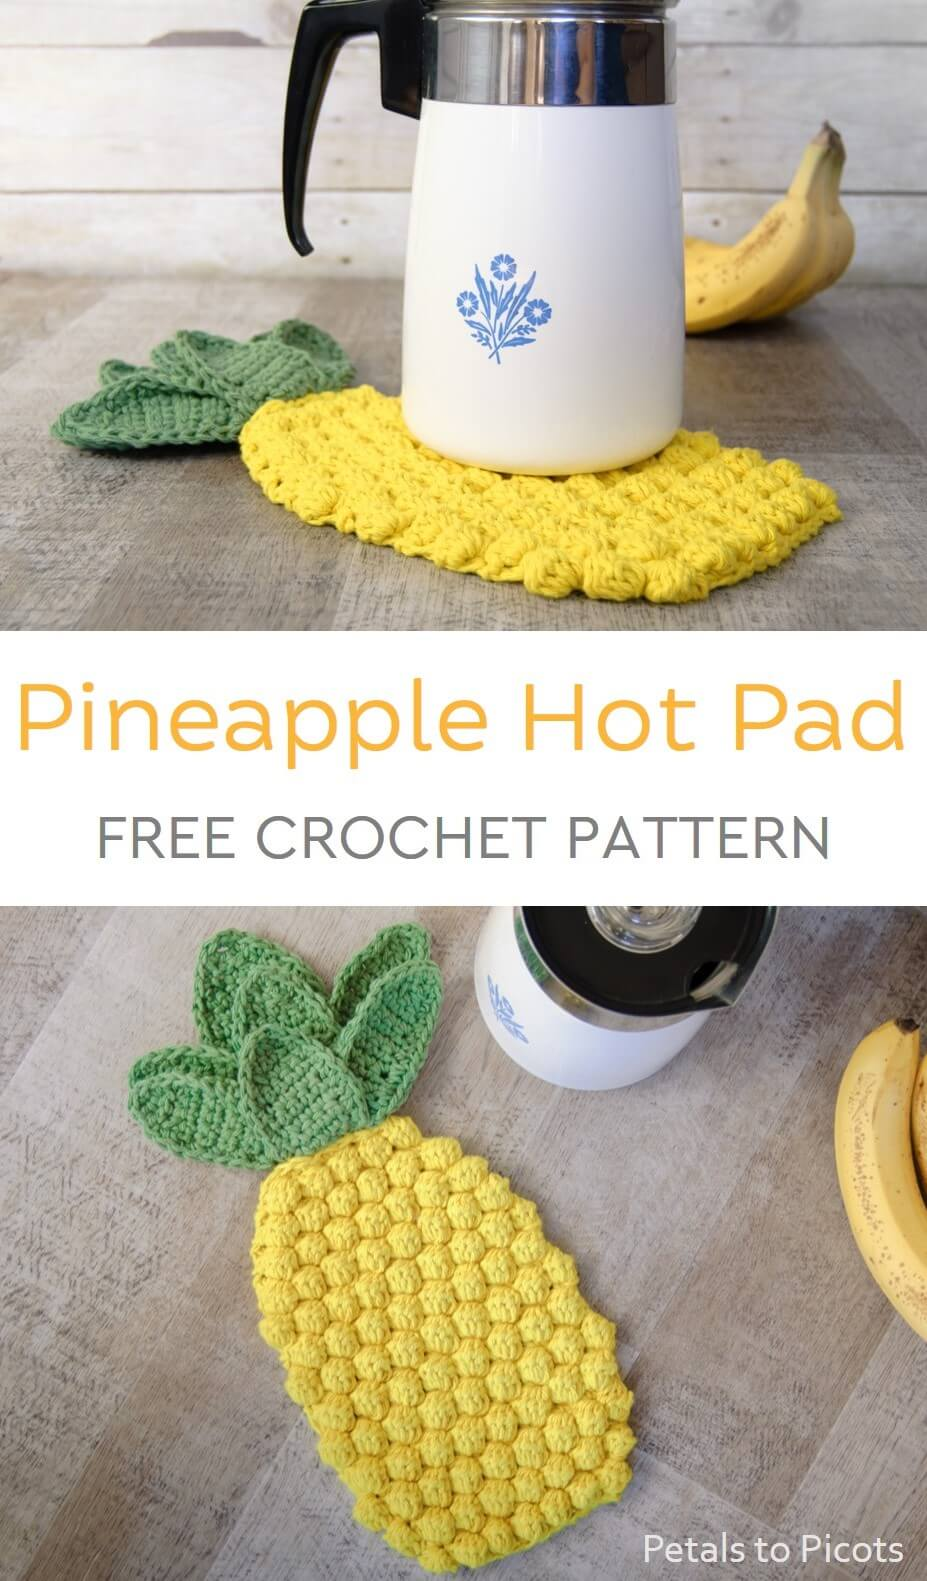 This pineapple crochet hot pad makes for an easy and portable project as well as a bright and cheery addition to your dining table or to gift to a friend!